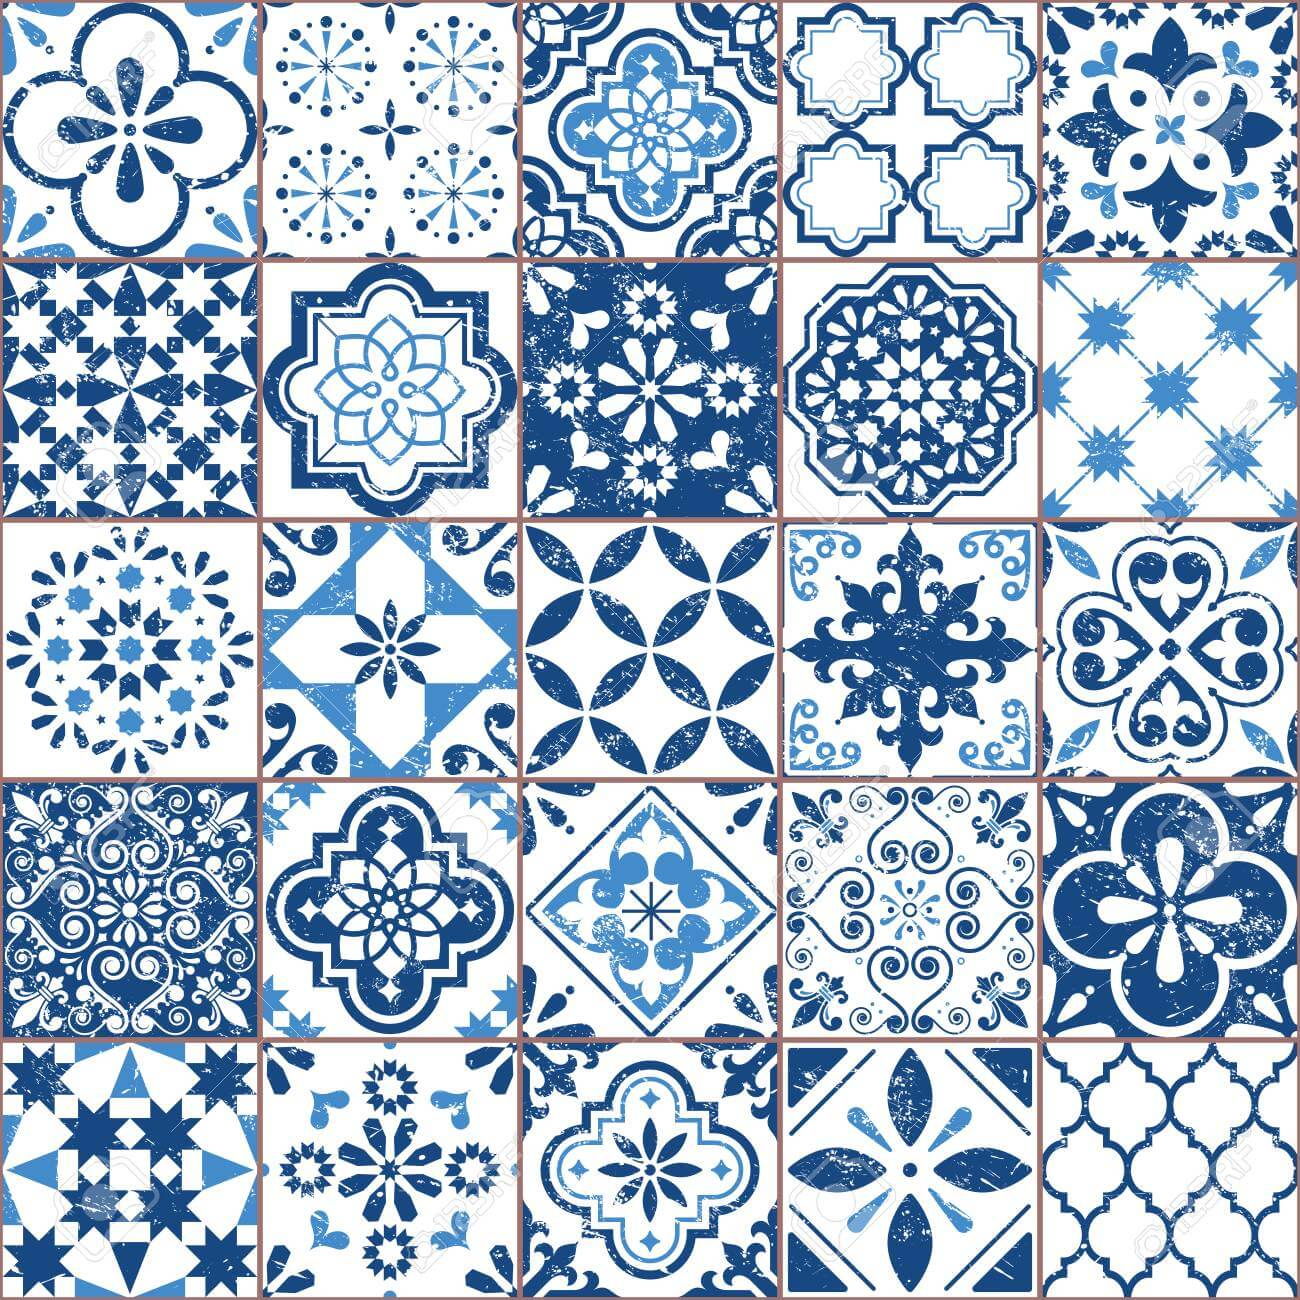 111411434-vector-azulejo-tile-pattern-portuguese-or-spanish-retro-old-tiles-mosaic-mediterranean-seamless-navy